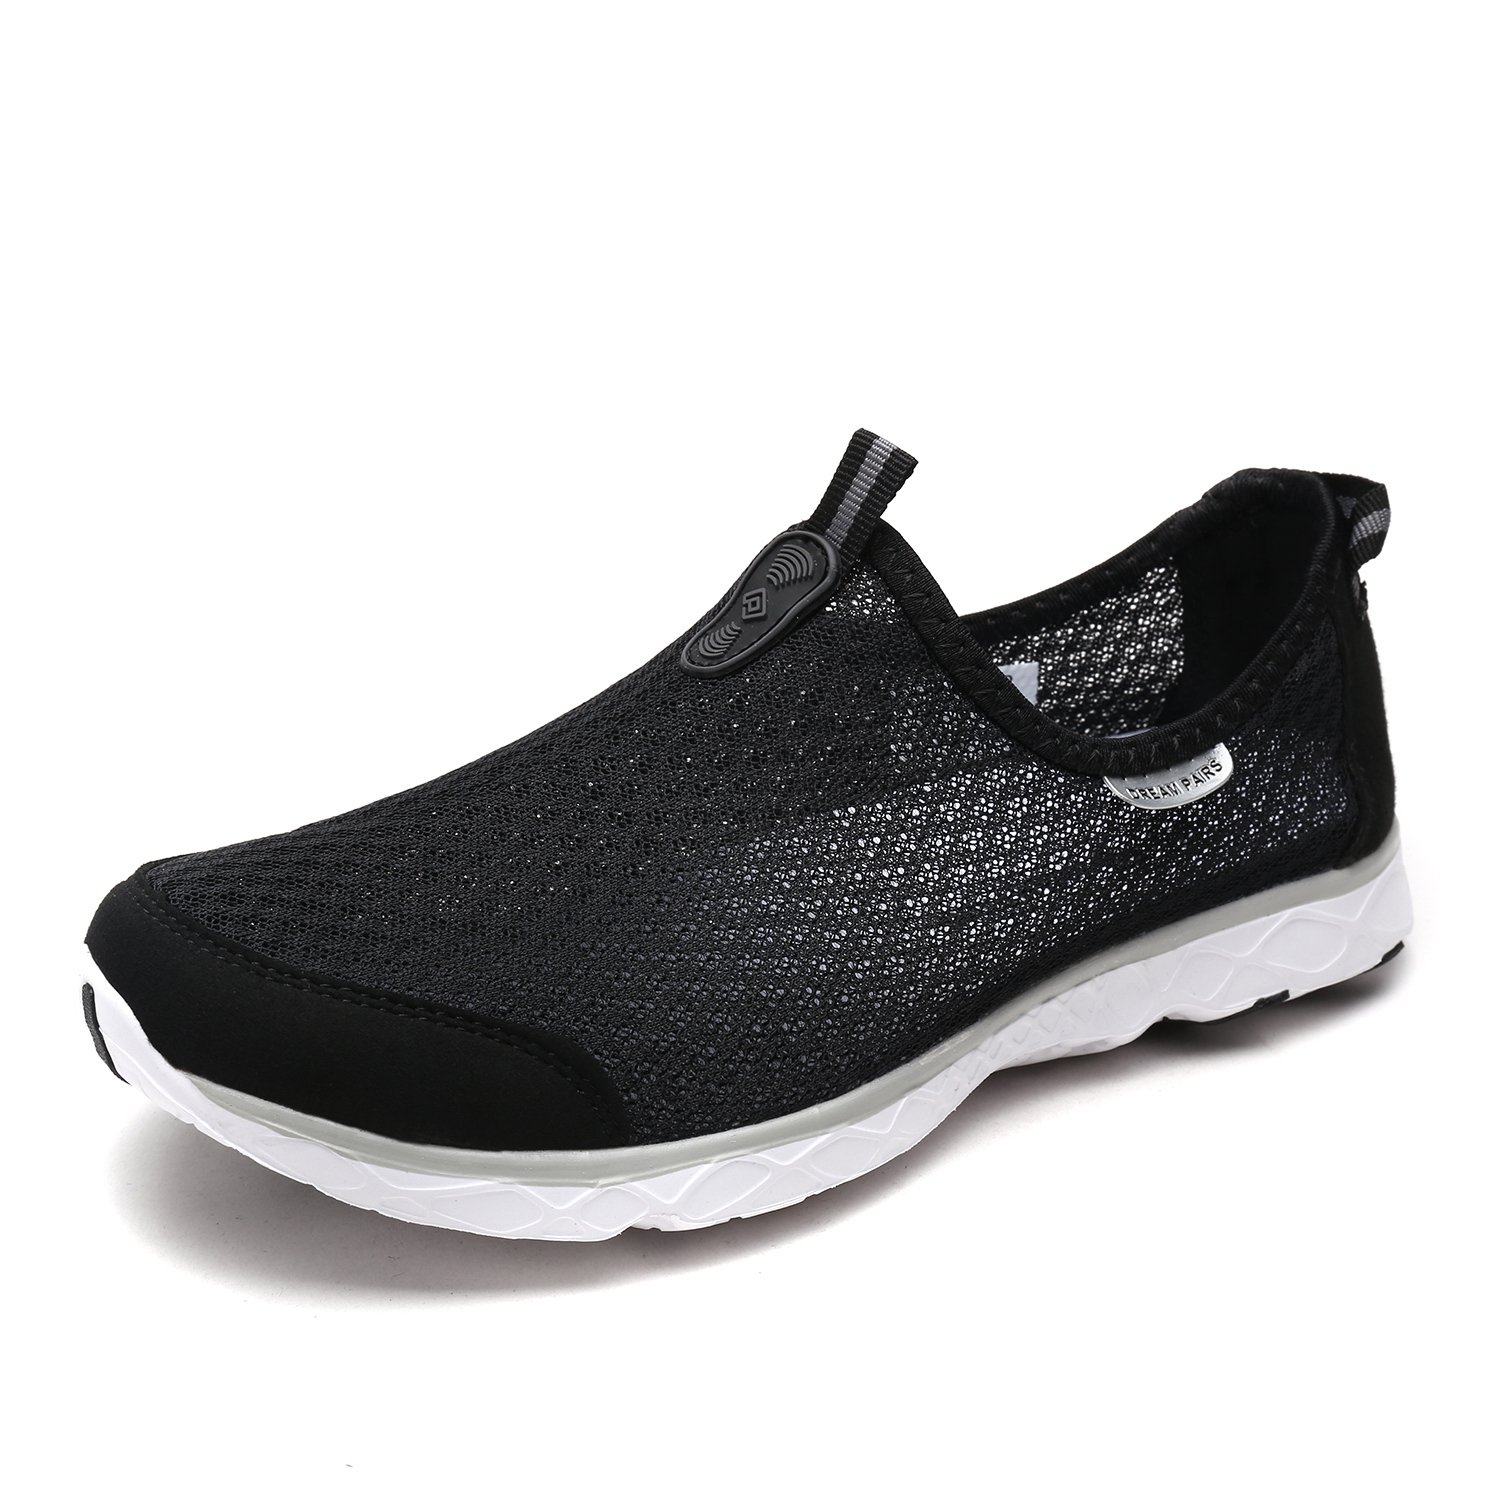 DREAM PAIRS Men's 1610043-M Black Grey Quick-Dry Slip-on Water Shoes for Beach Pool Walking - 12 M US